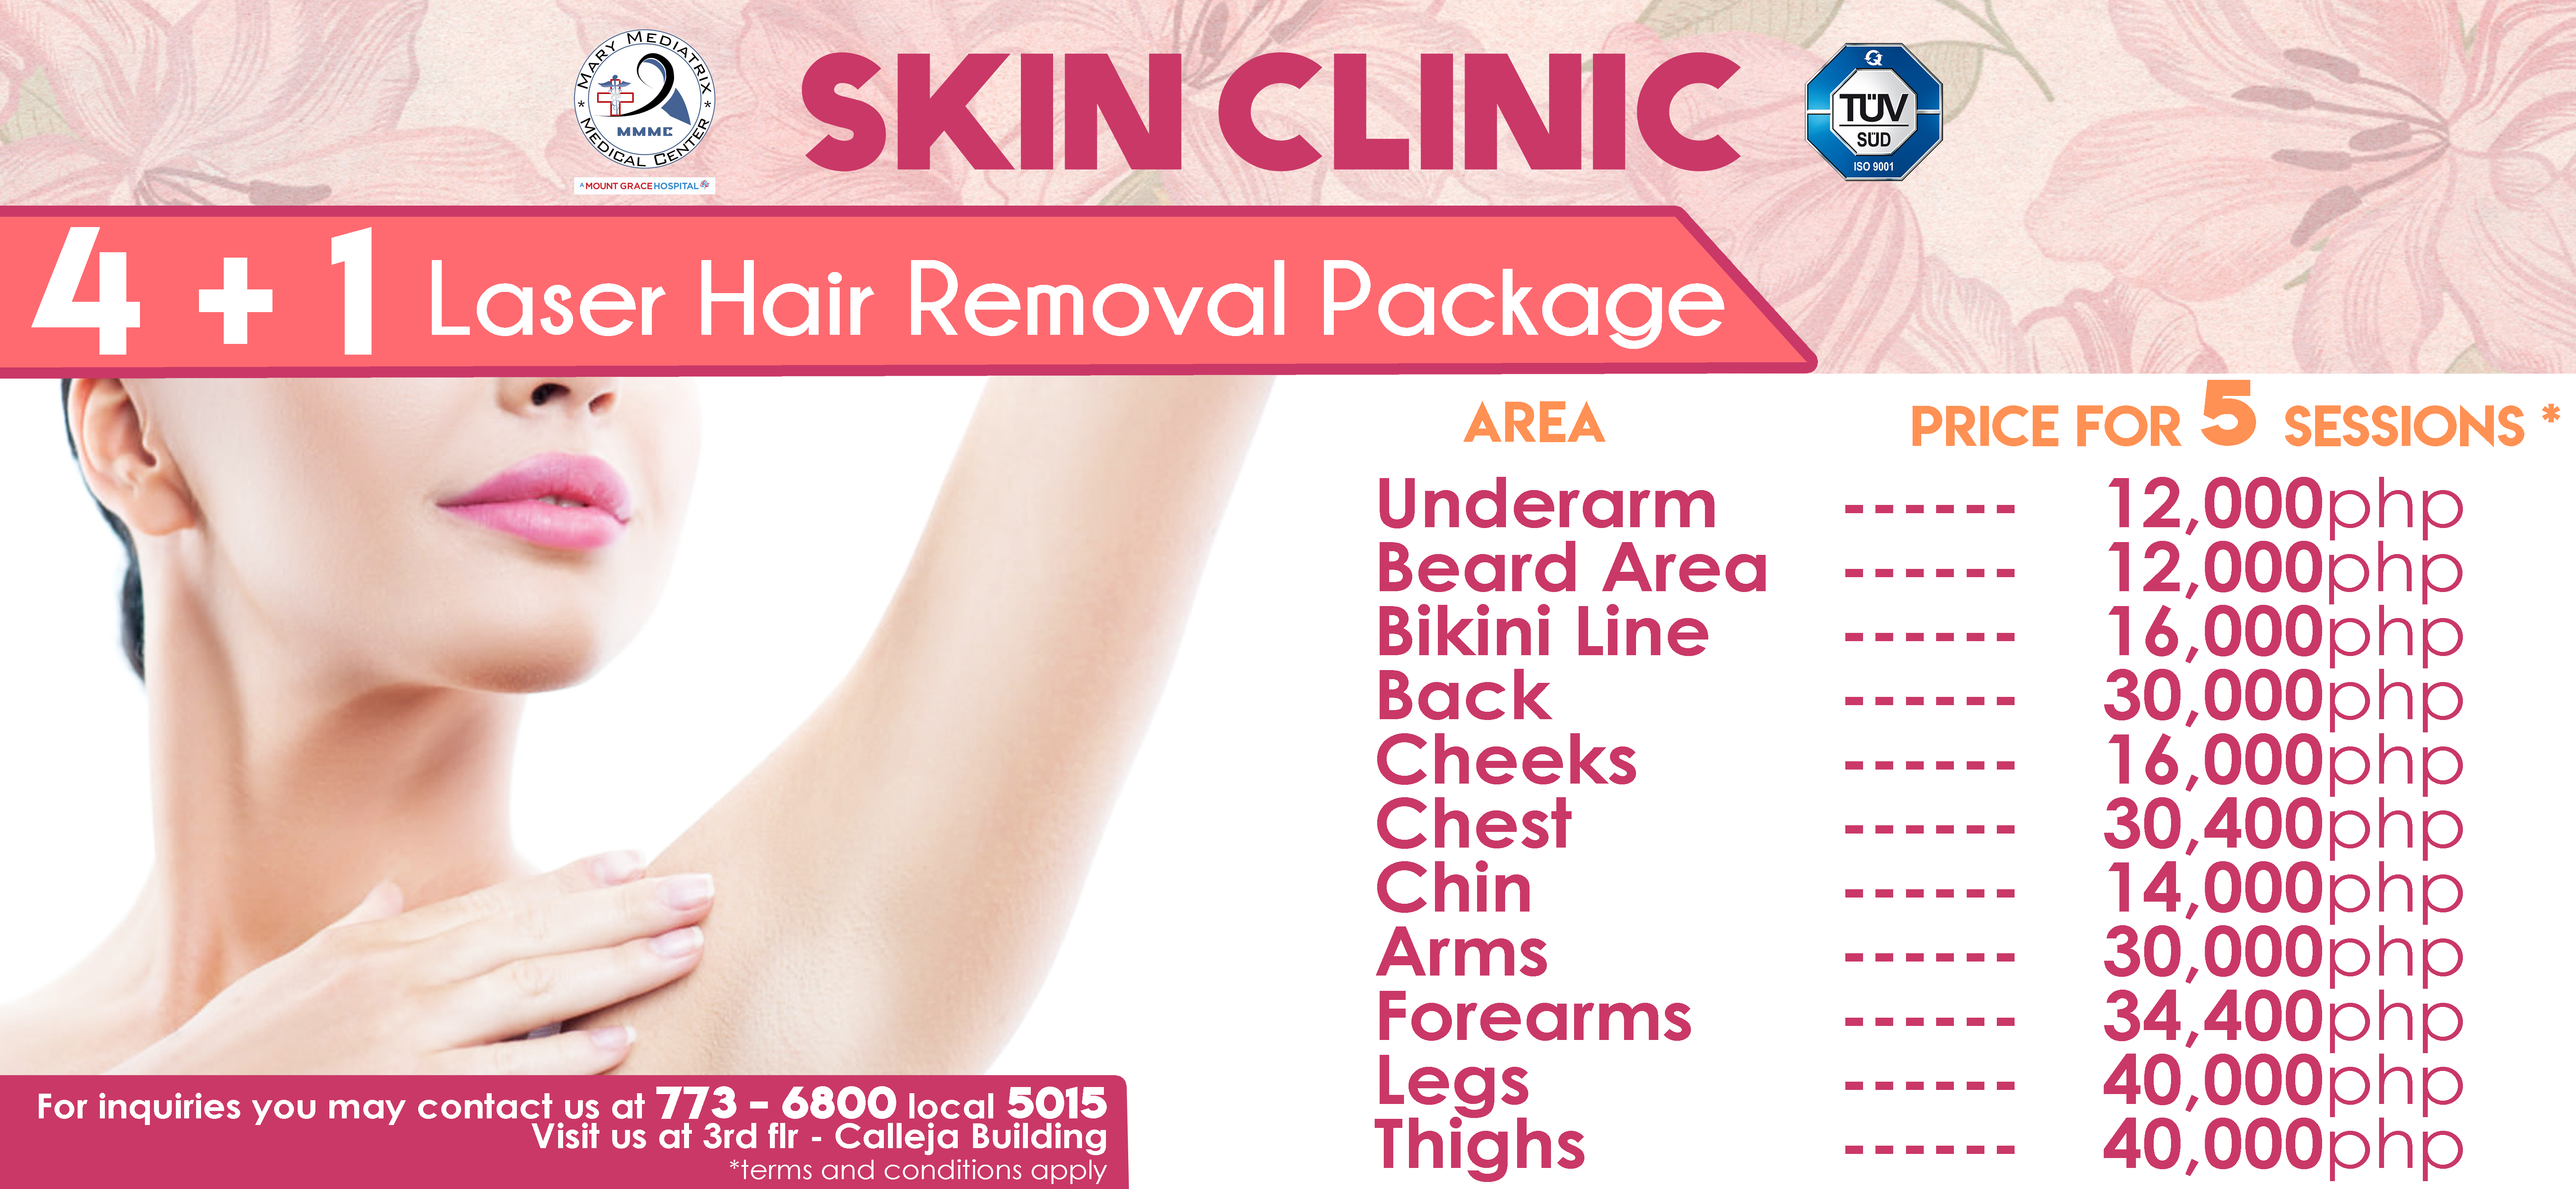 Skin Clinic - Hair Removal1